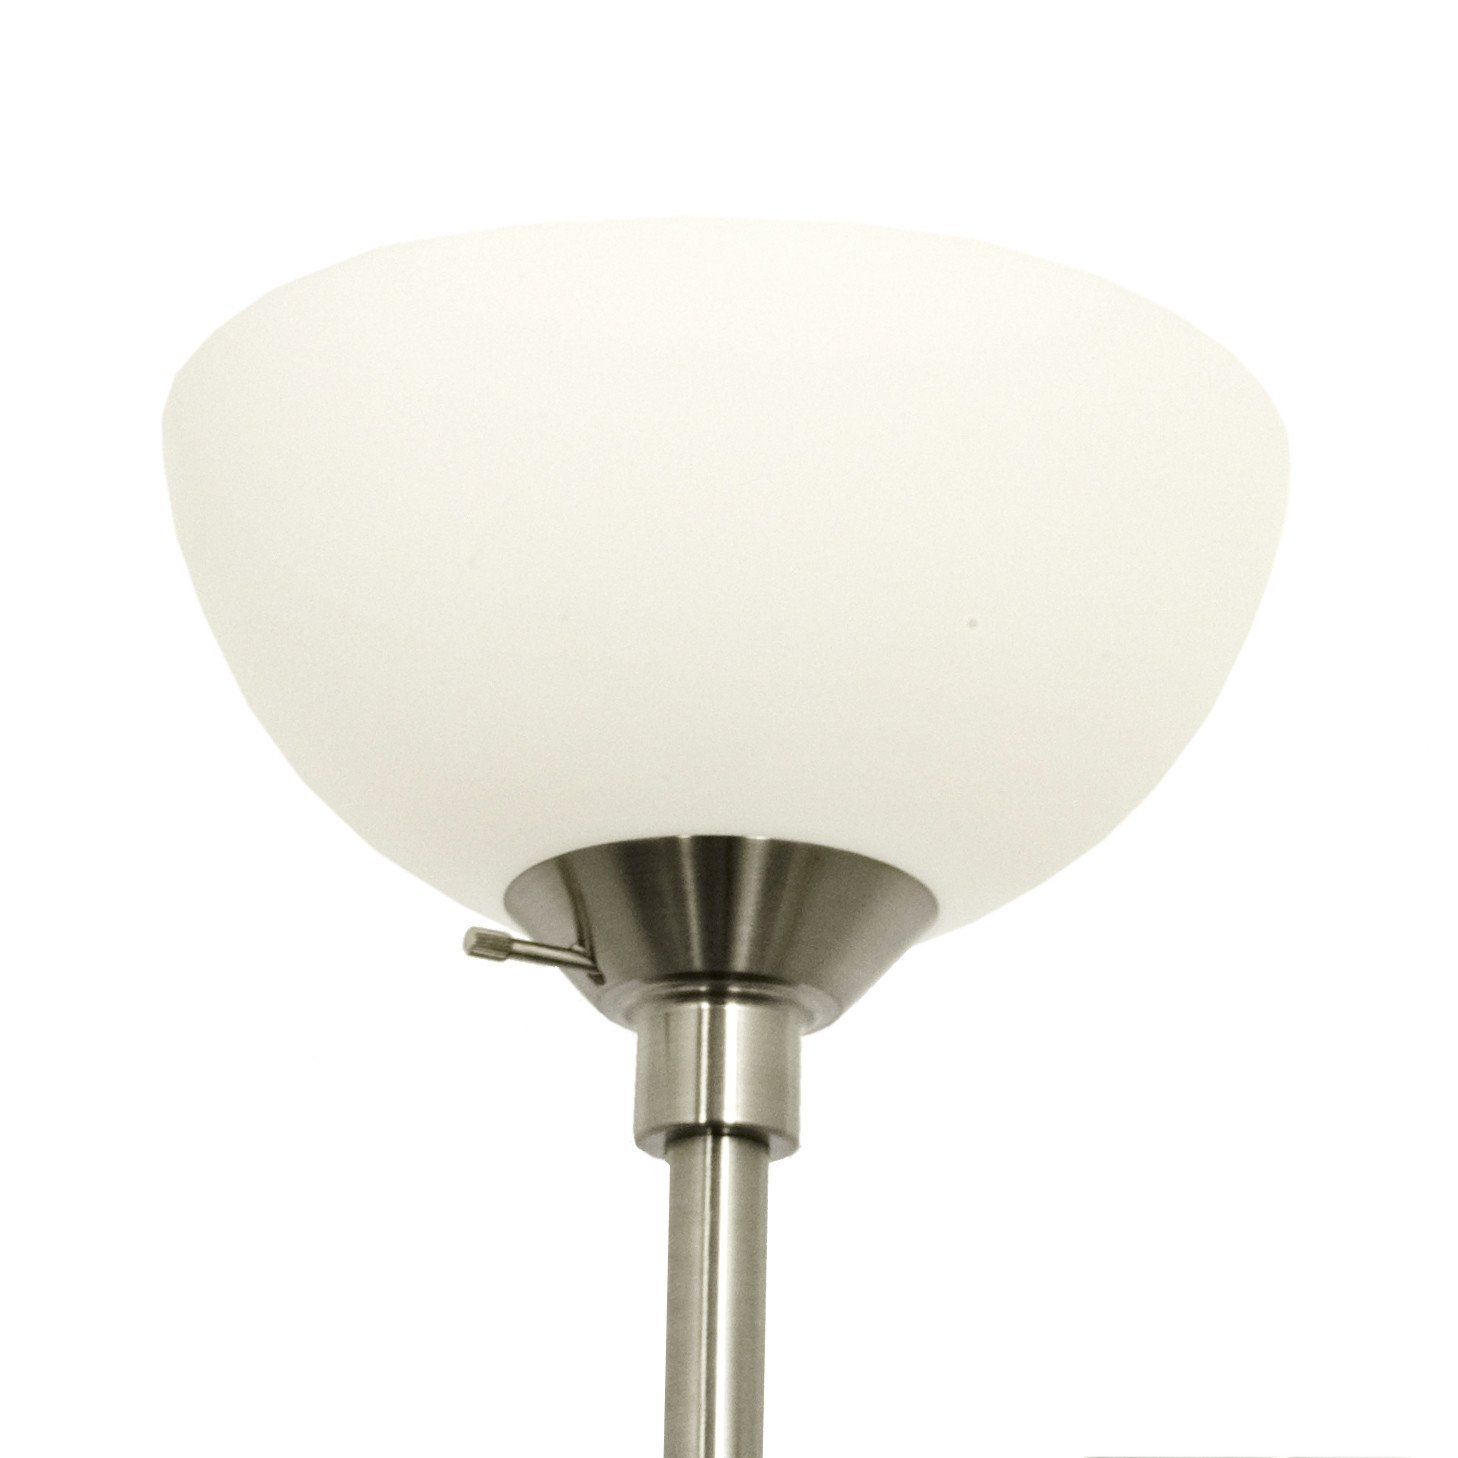 Light Accents Replacement shade for 6185-72 (Acrylic Shade only)